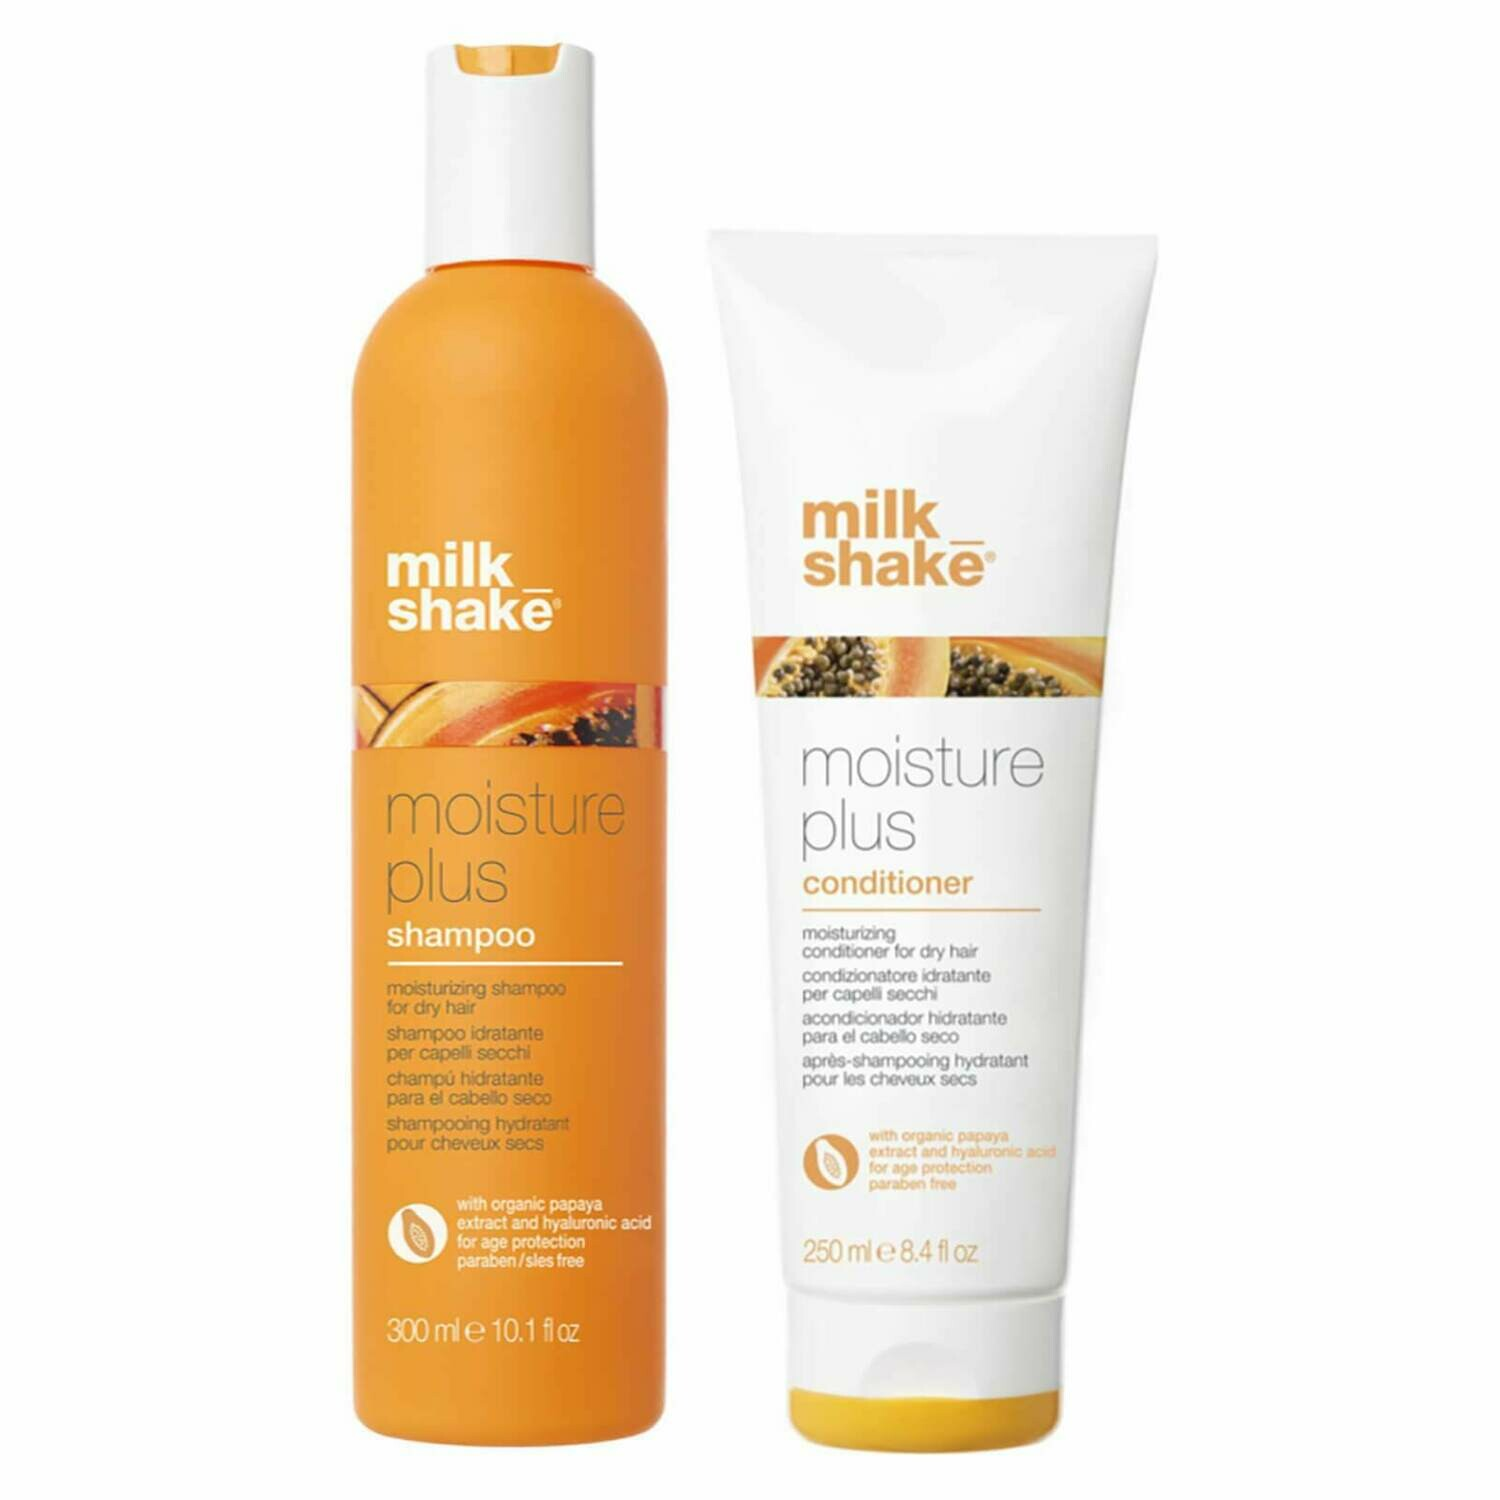 Moisture plus shampoo en conditioner duo kit.